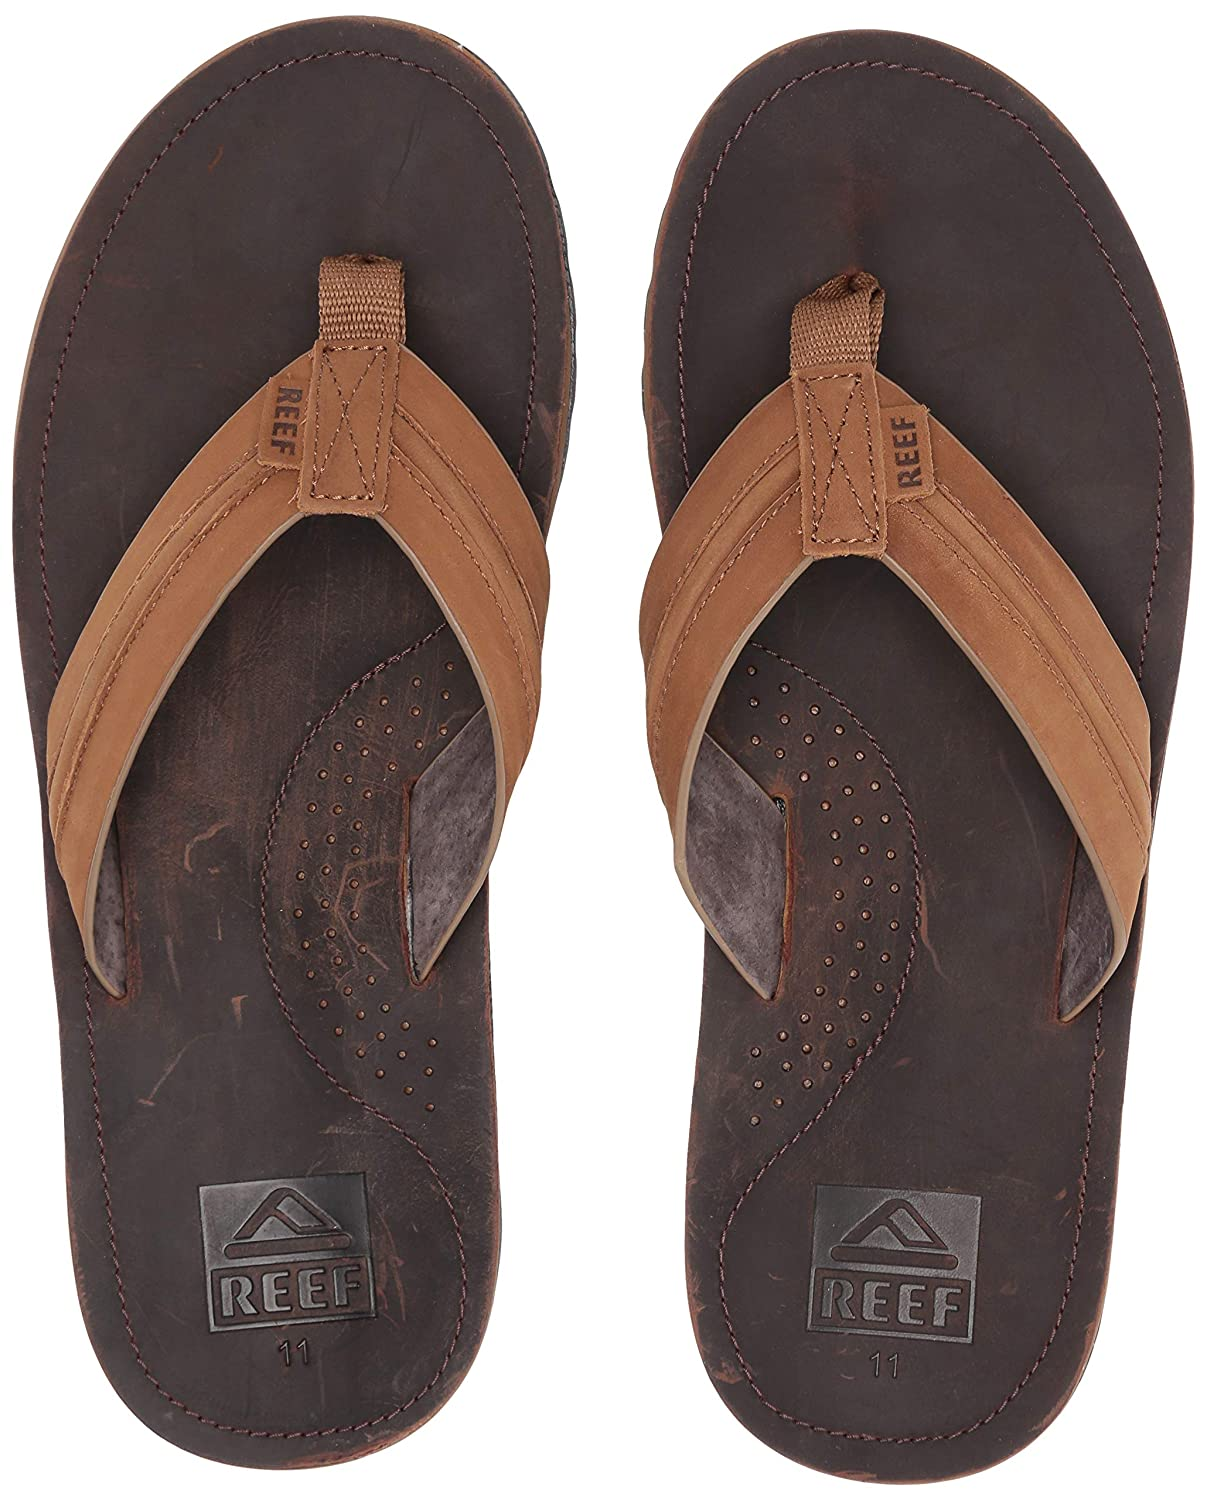 Premium Real Leather Flip Flops for Men With Soft Cushion Footbed Waterproof Reef Mens Sandal Voyage Lux